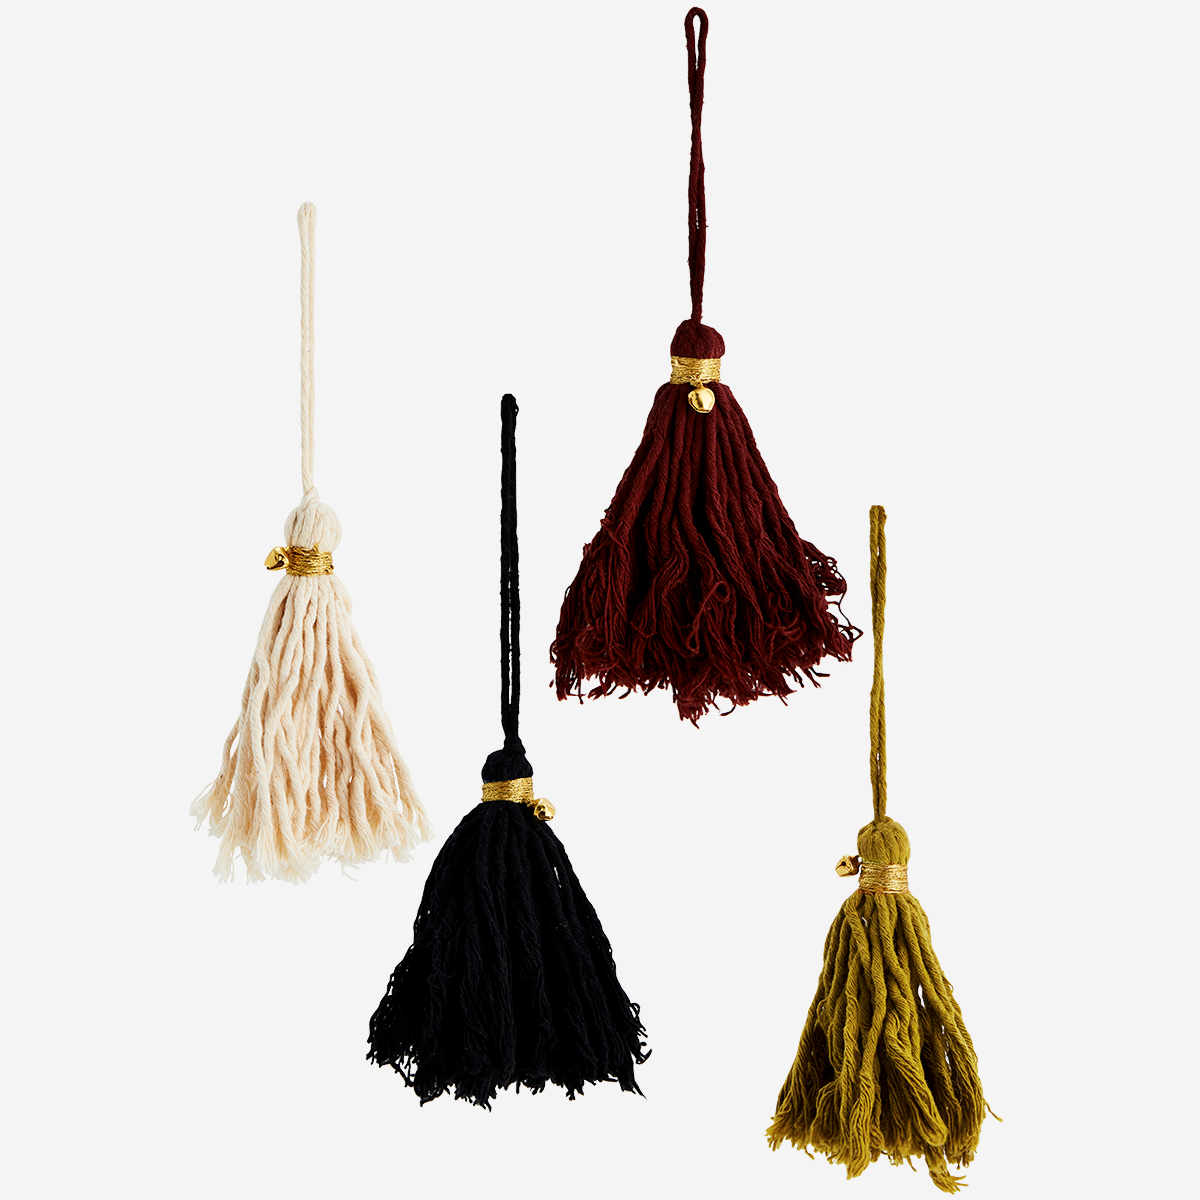 Set of 4 Cotton Tassels with Bells